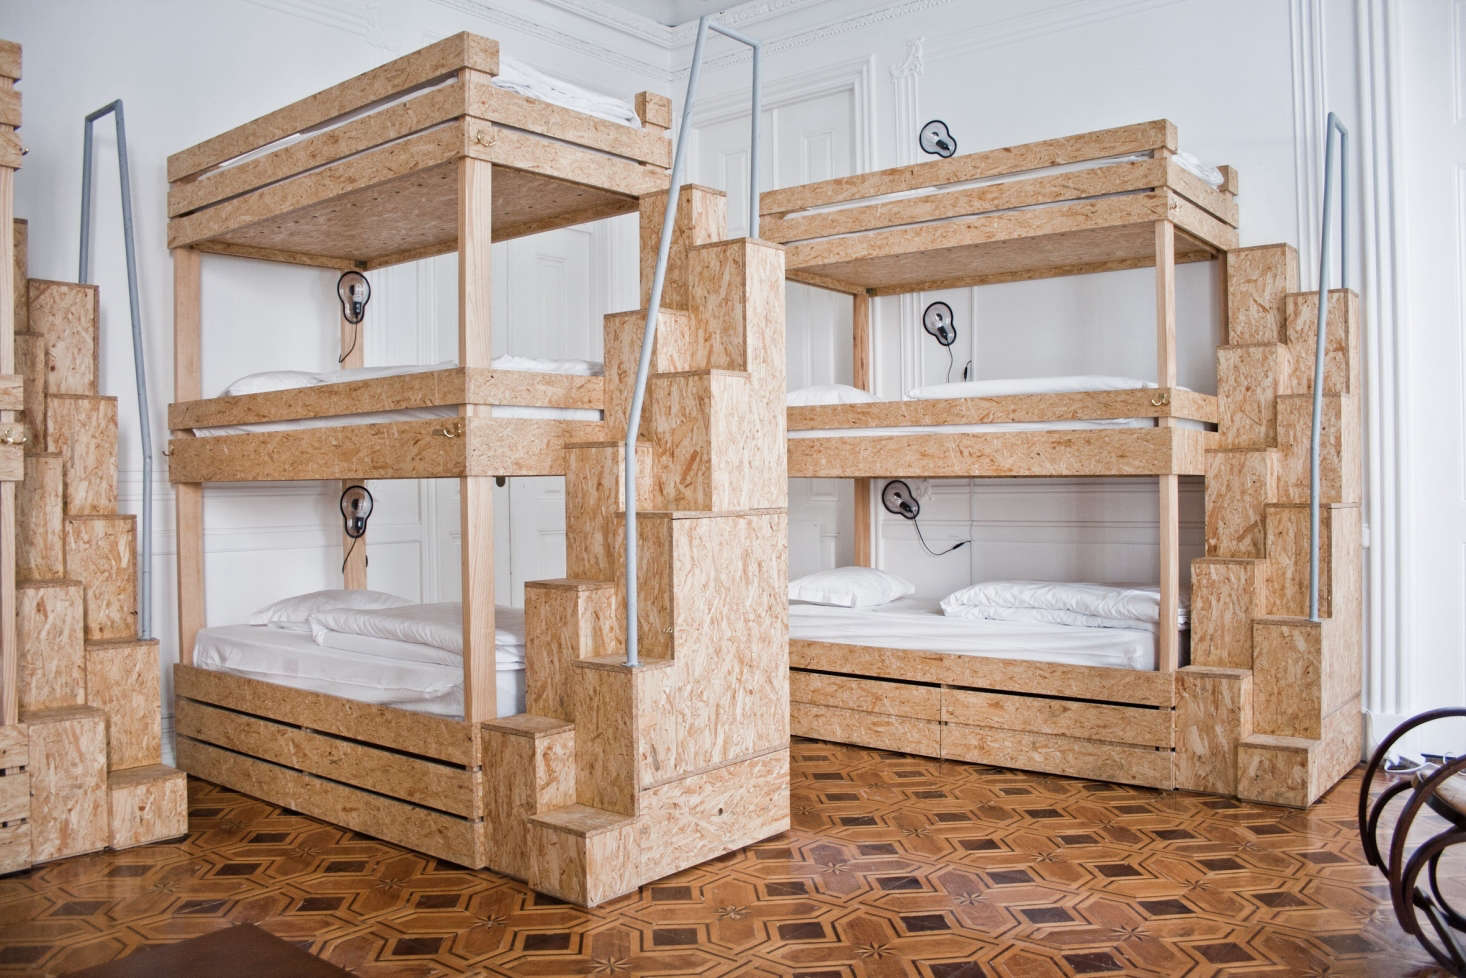 Custom Particle Board Bunk Beds Designed By Architect Catarina Cabral Contrast With The Parquet Flooring And